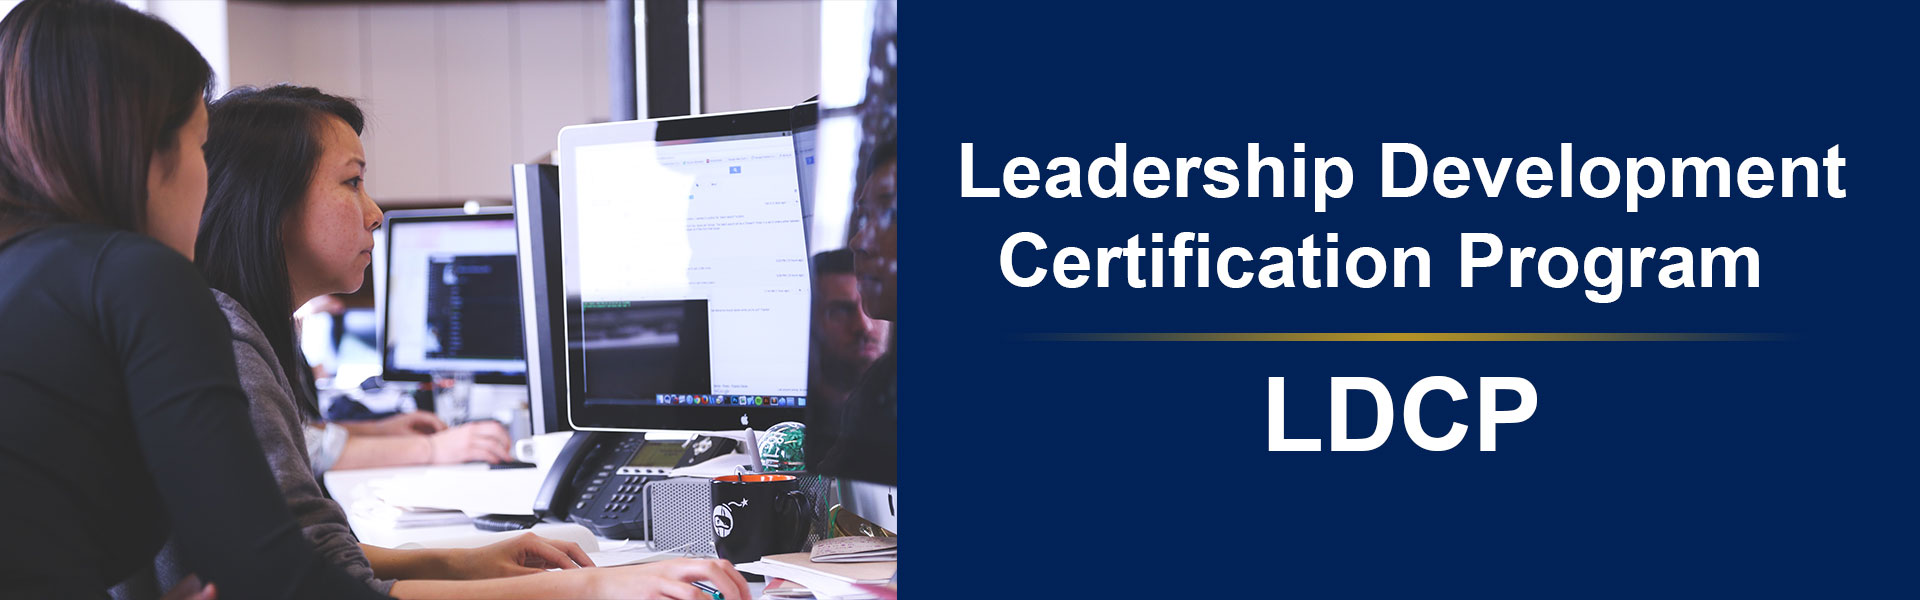 Leadership Development Certification Program